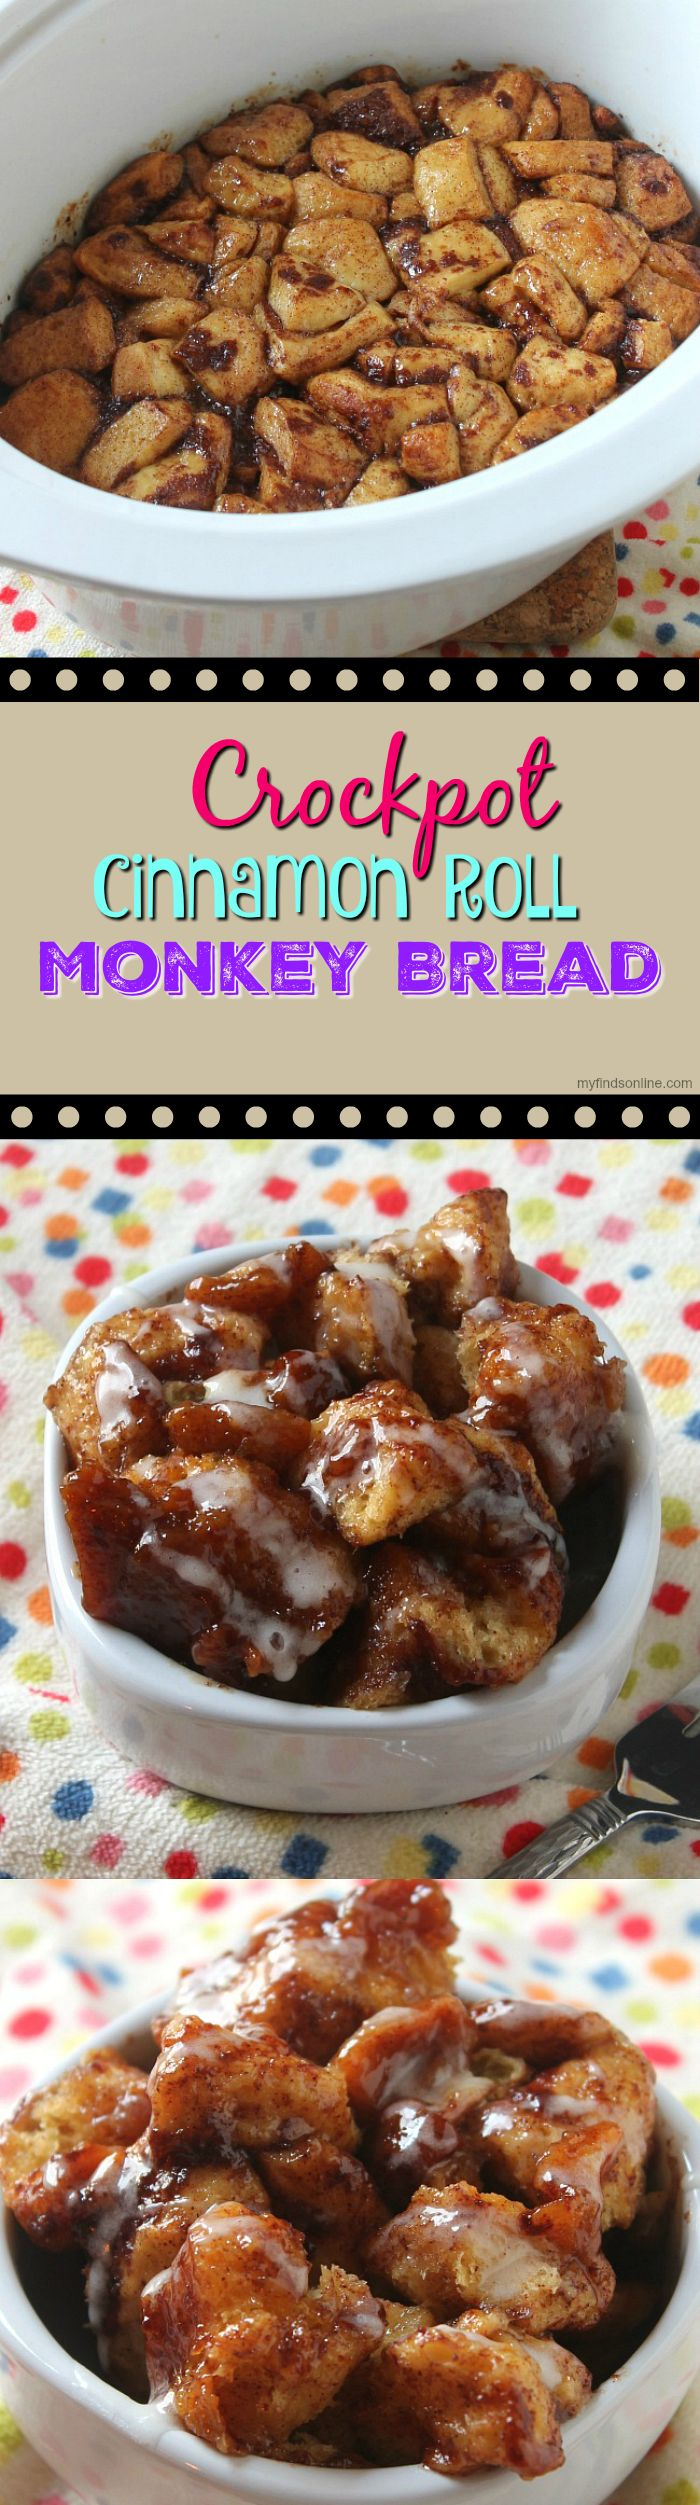 Crockpot Cinnamon Roll Monkey Bread / myfindsonline.com